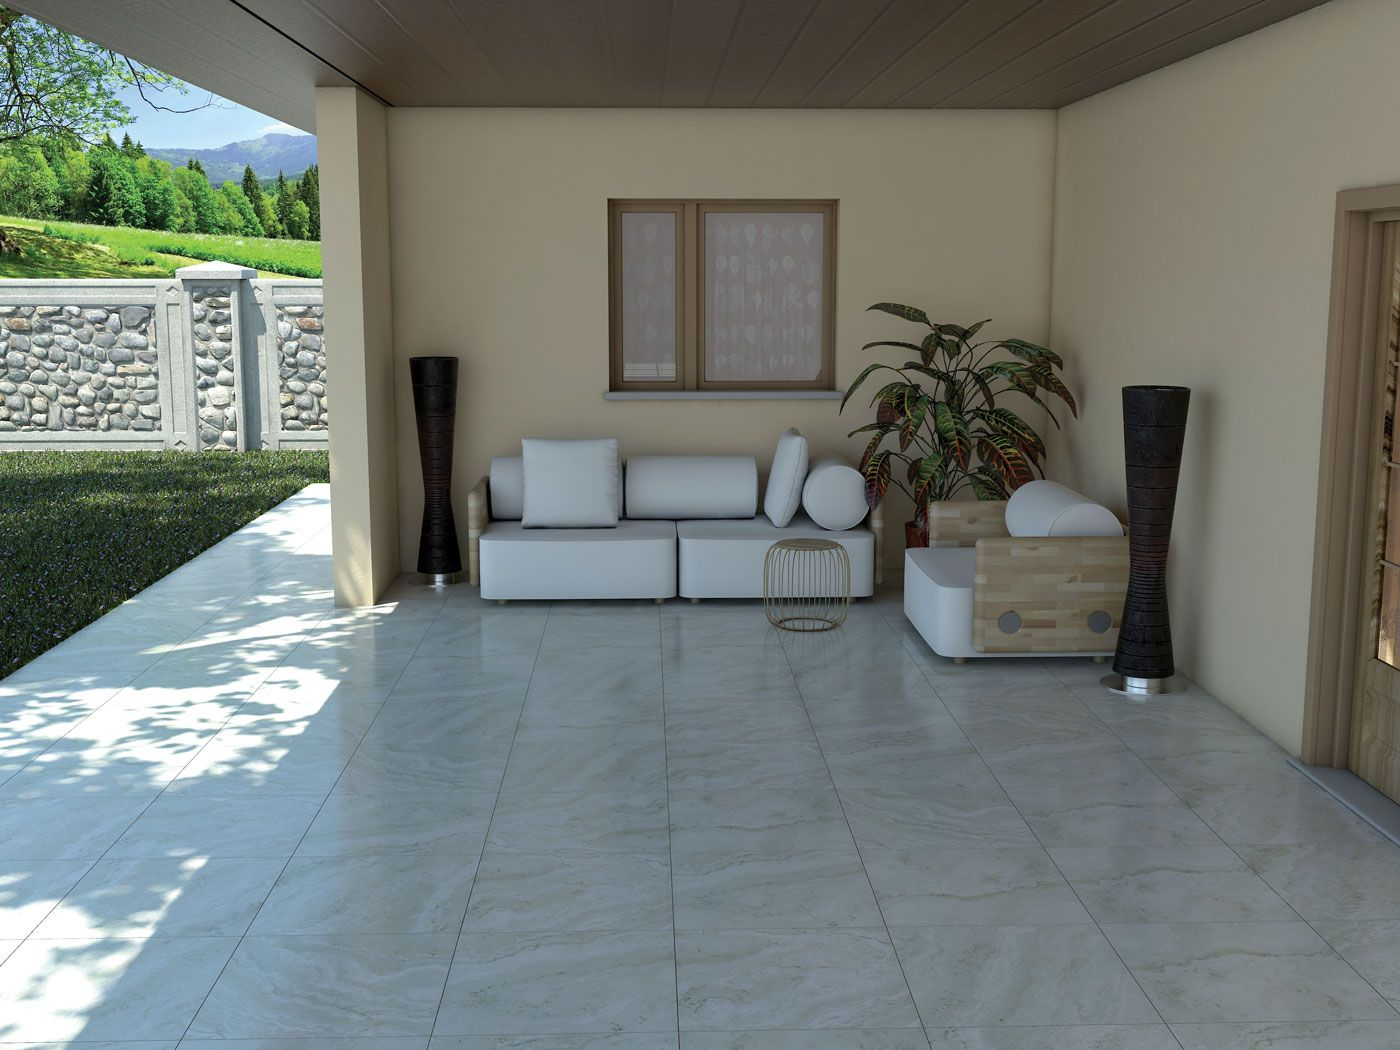 Ganymede White 12 X24 Porcelain Tile Also Available In Beige And Mosaics